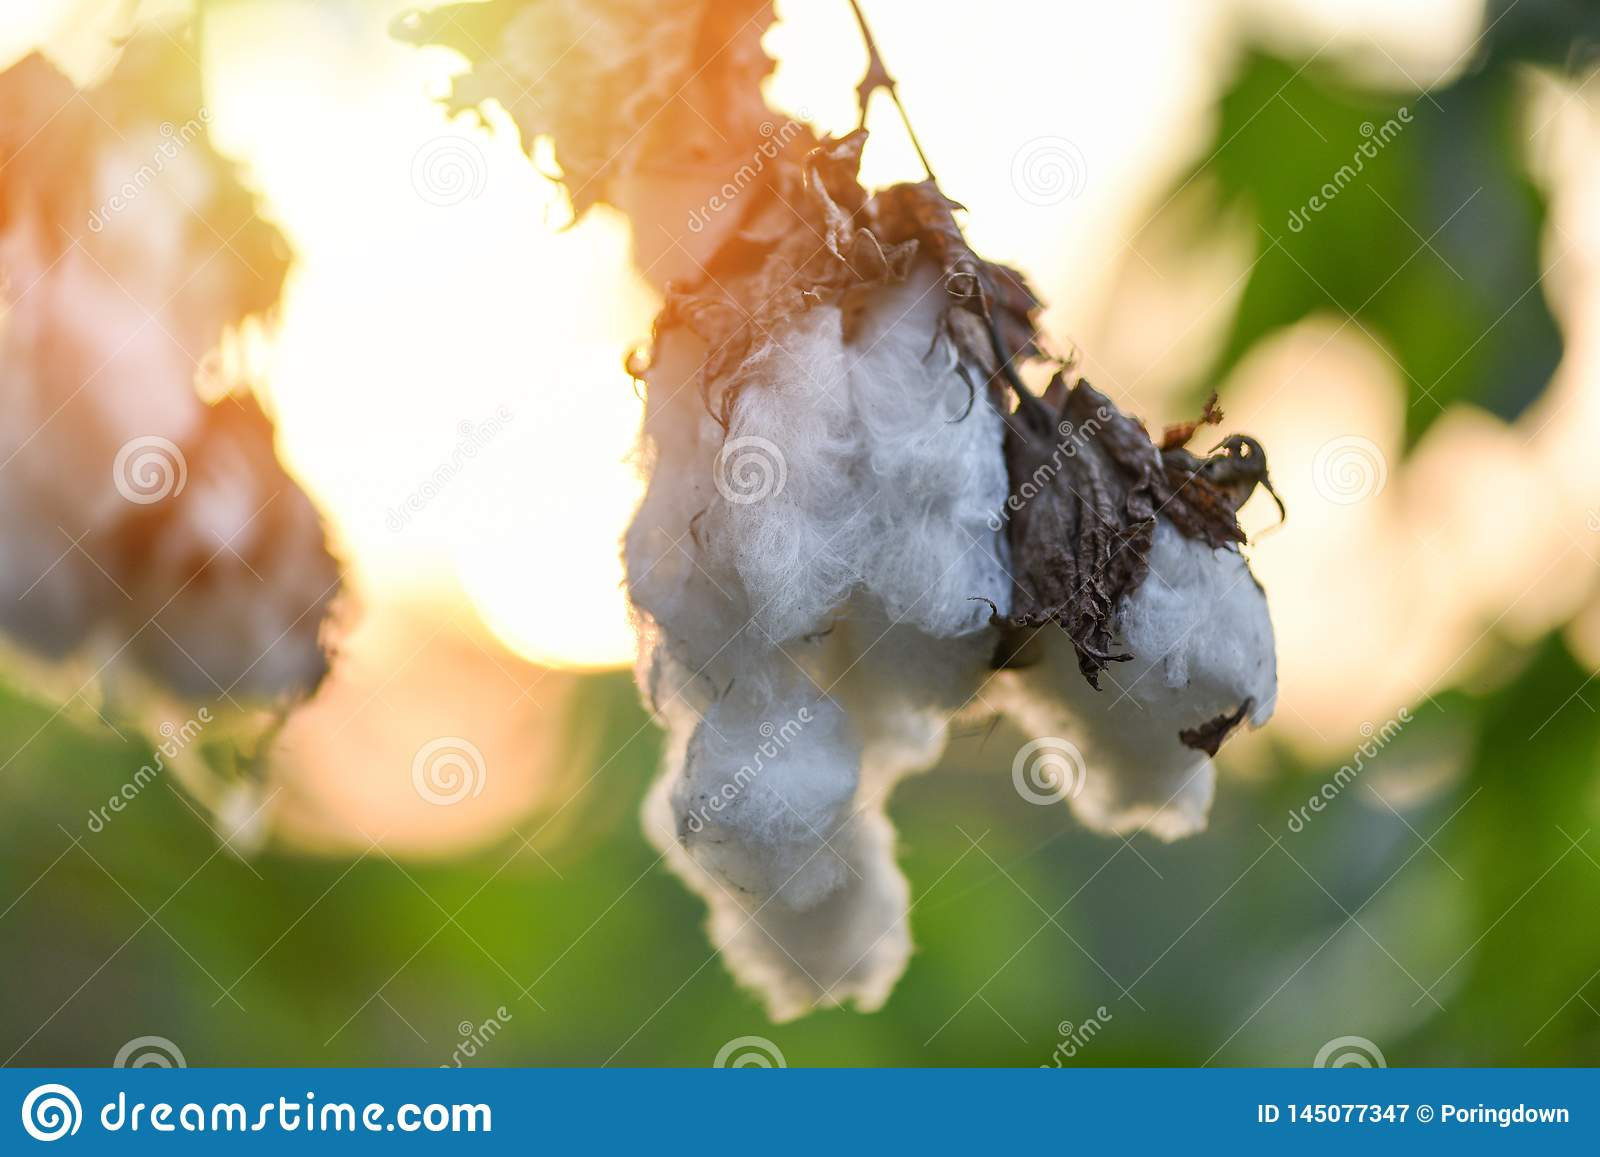 Cotton flower on tree in the cotton field sunset background